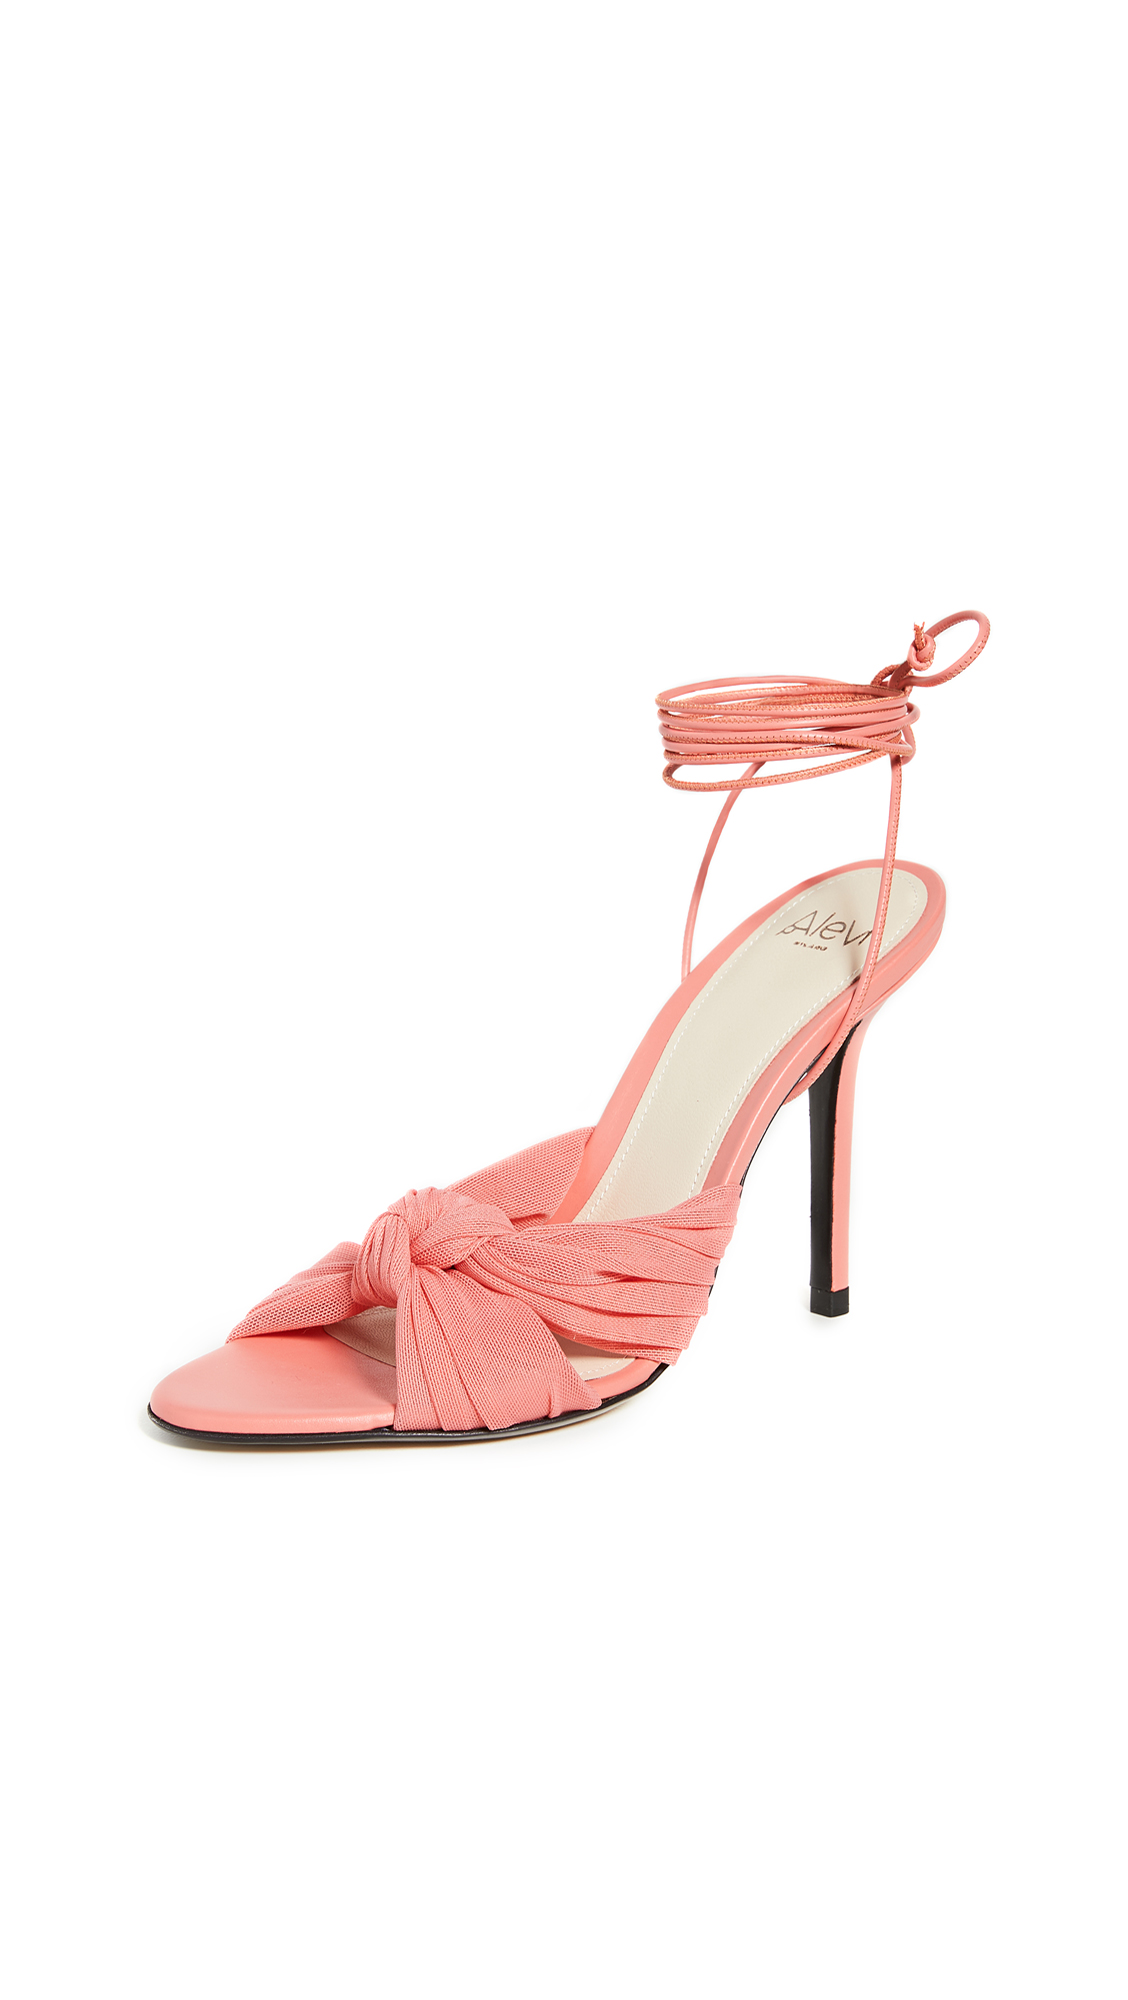 Alevi Milano Vichy Sandals - 60% Off Sale